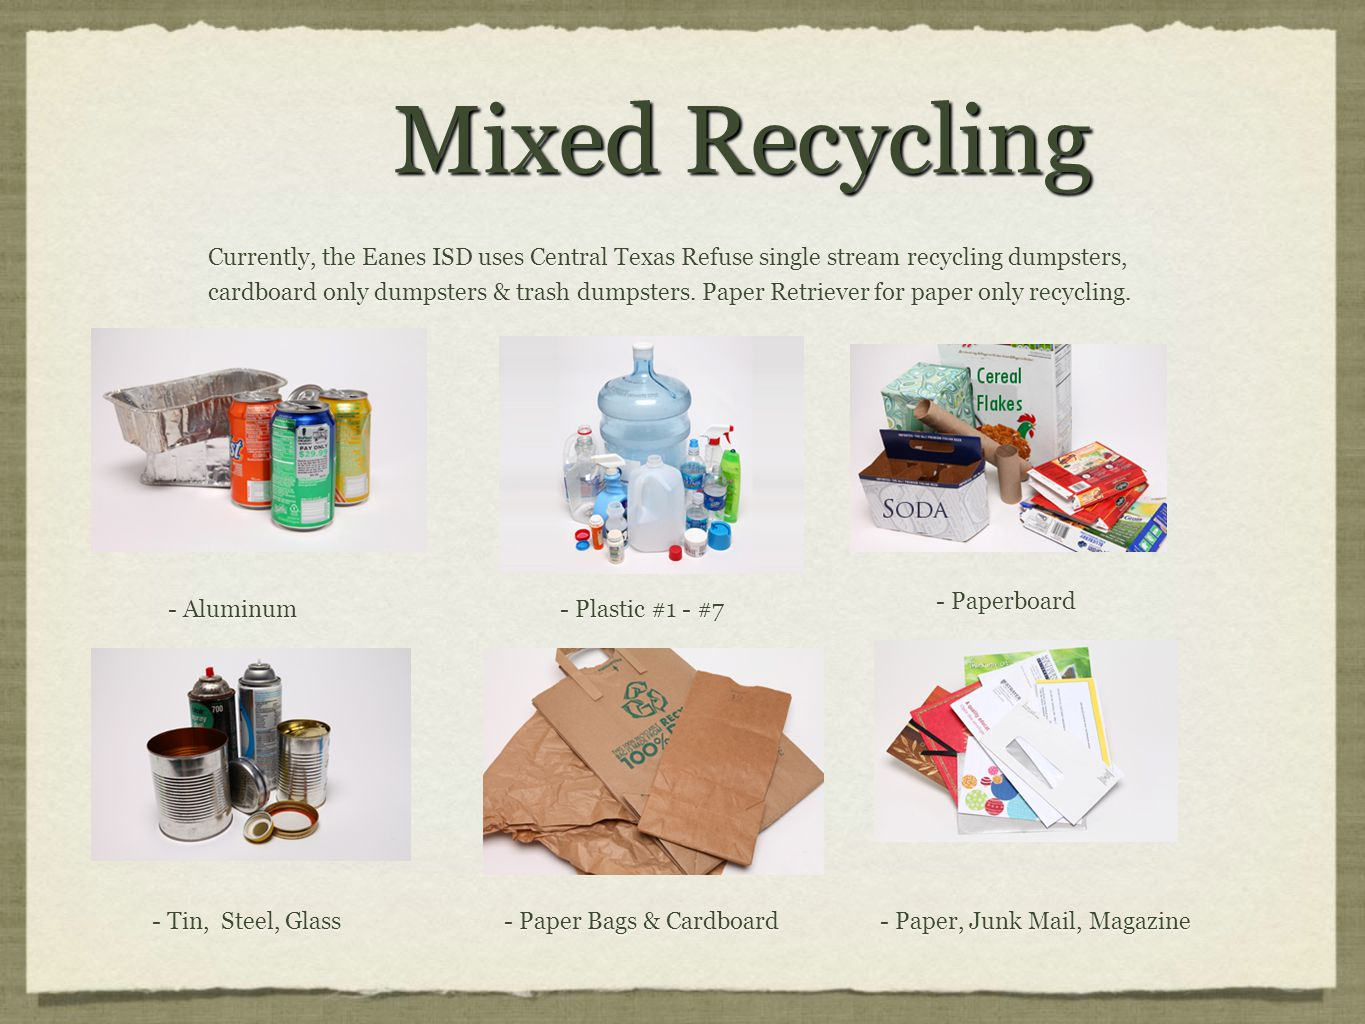 Mixed Recycling Currently, the Eanes ISD uses Central Texas Refuse single stream recycling dumpsters, cardboard only dumpsters & trash dumpsters. Pape